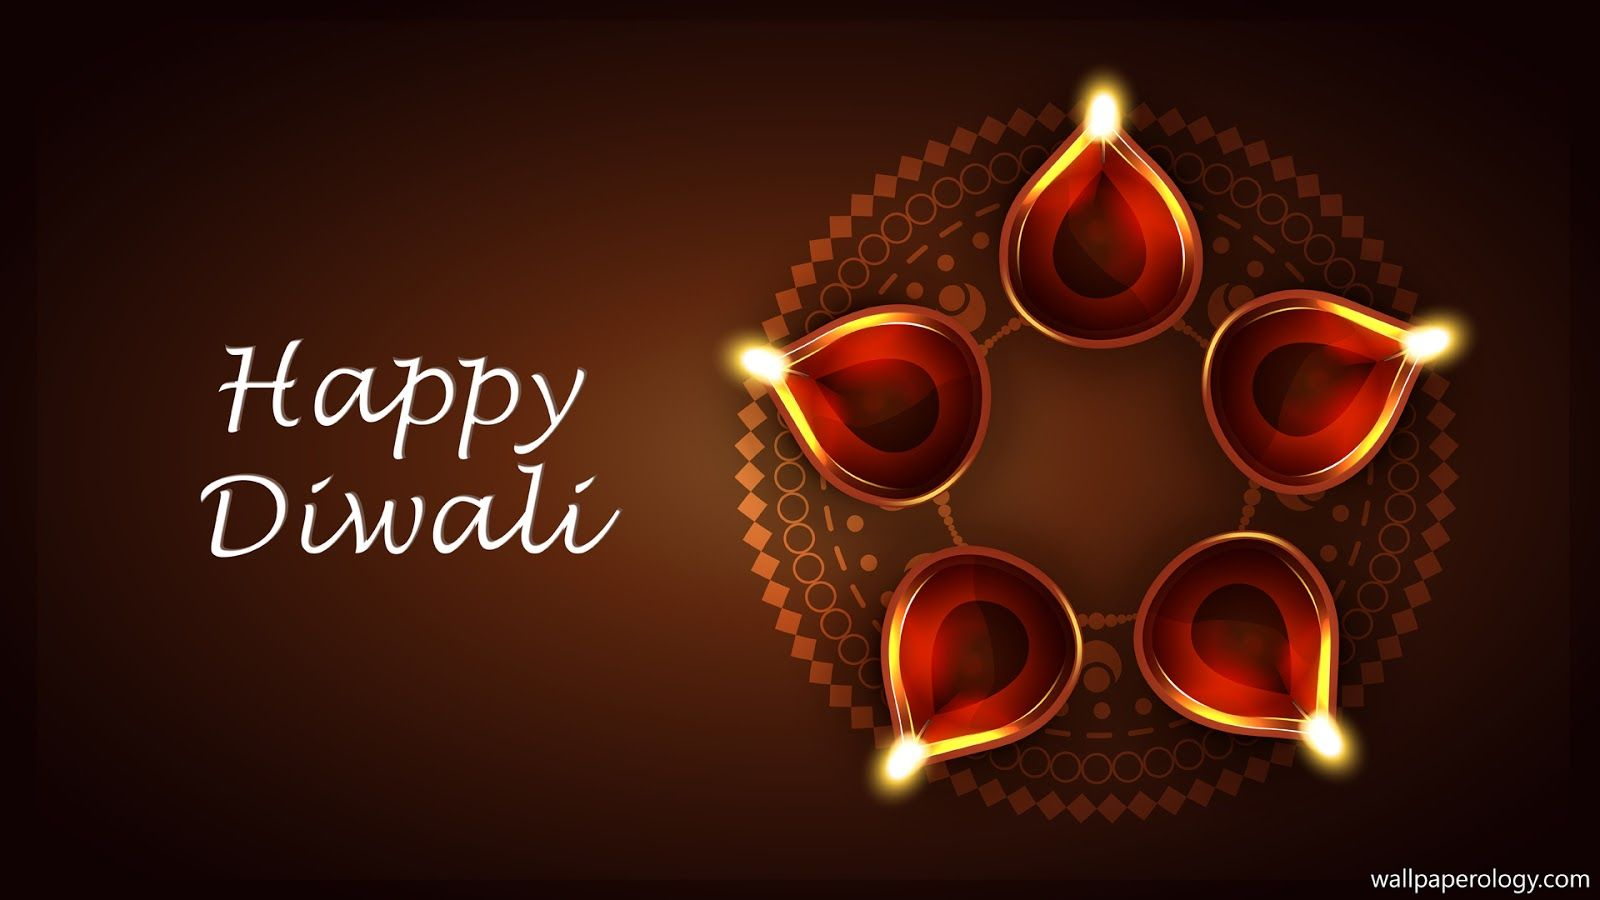 Great Wallpaper Love Diwali - 79c245ffc8f1d4d09979583fd2d46a77  Photograph_845272.jpg